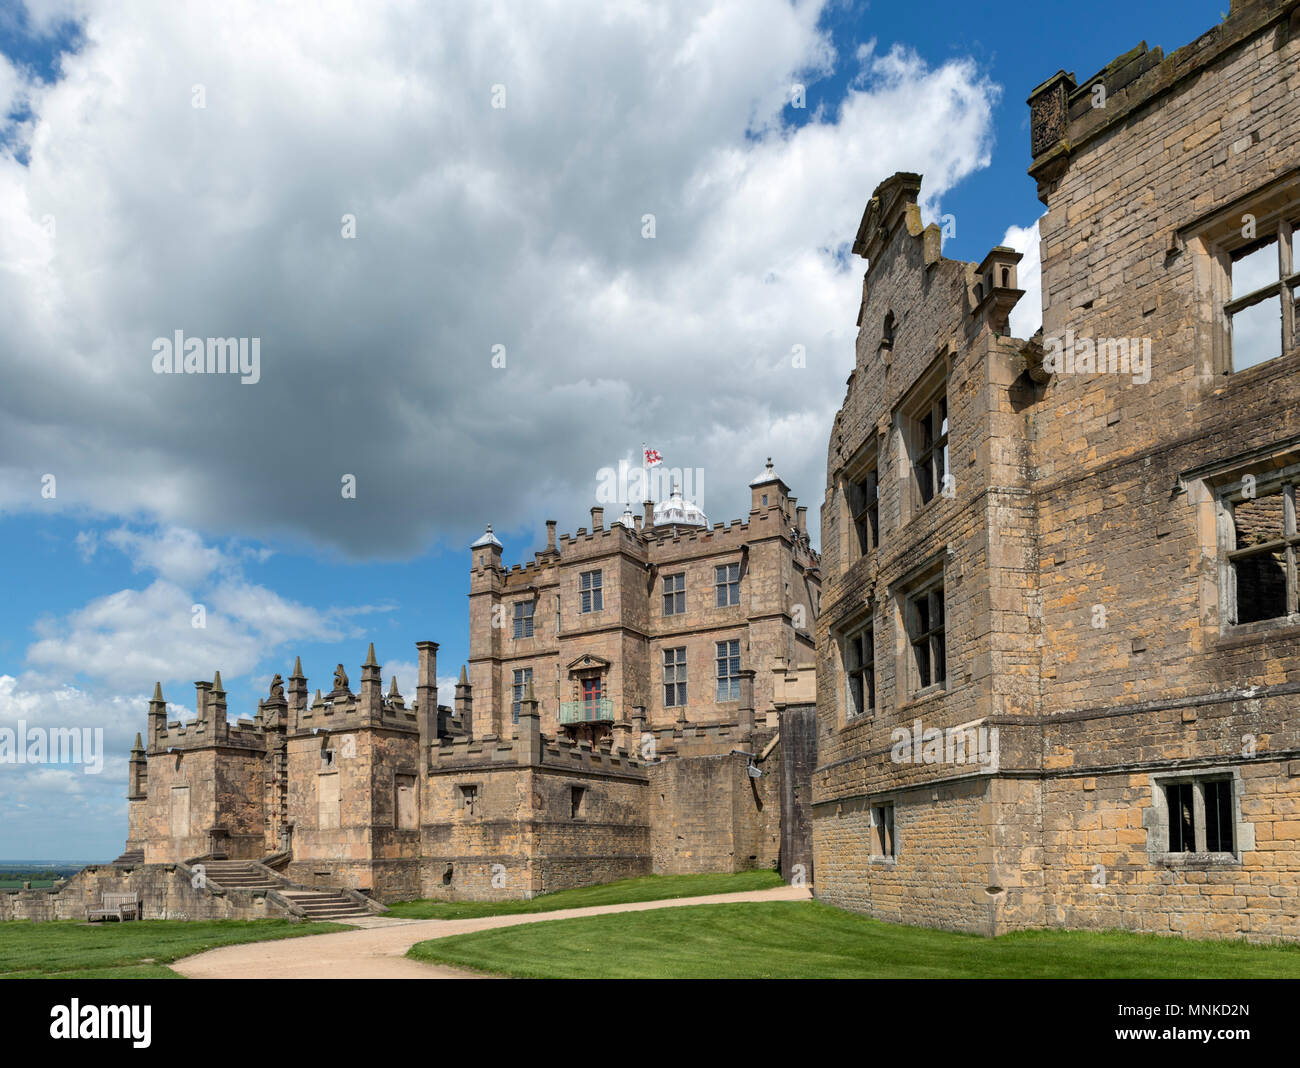 Historic 17th century Bolsover Castle, Bolsover, Derbyshire, England, UK - Stock Image